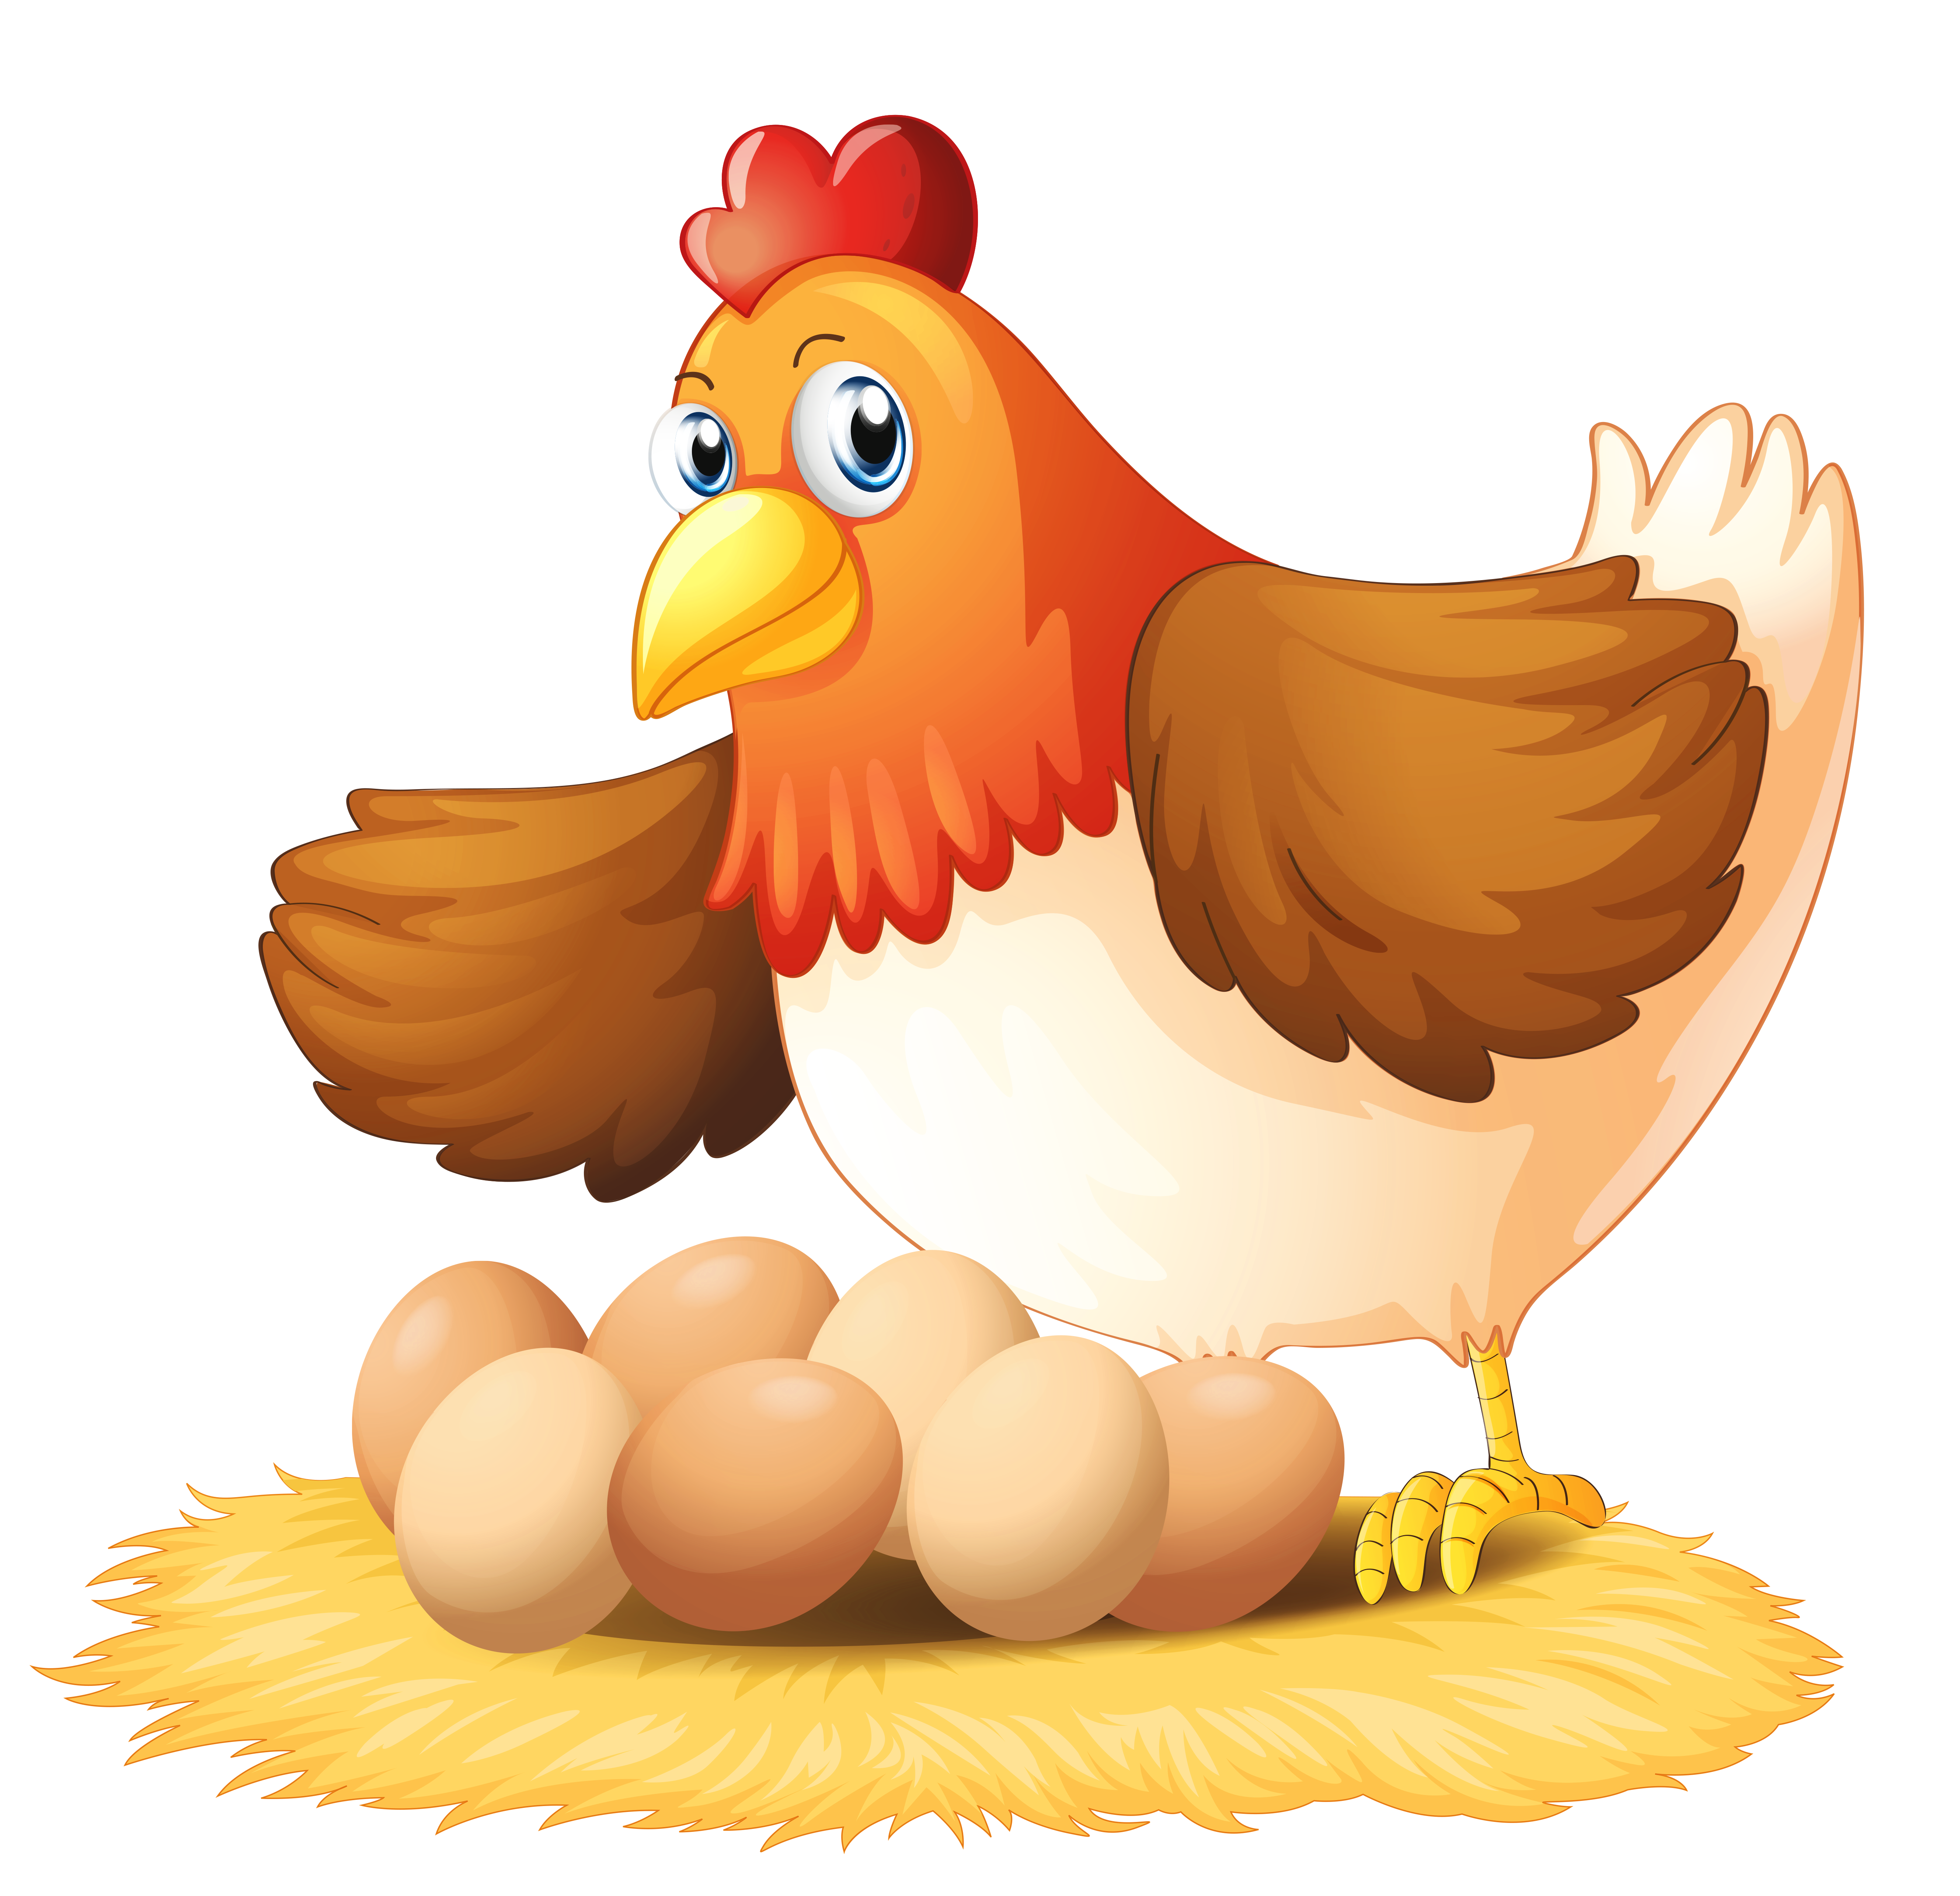 image Hen with png gallery. Eggs clipart.